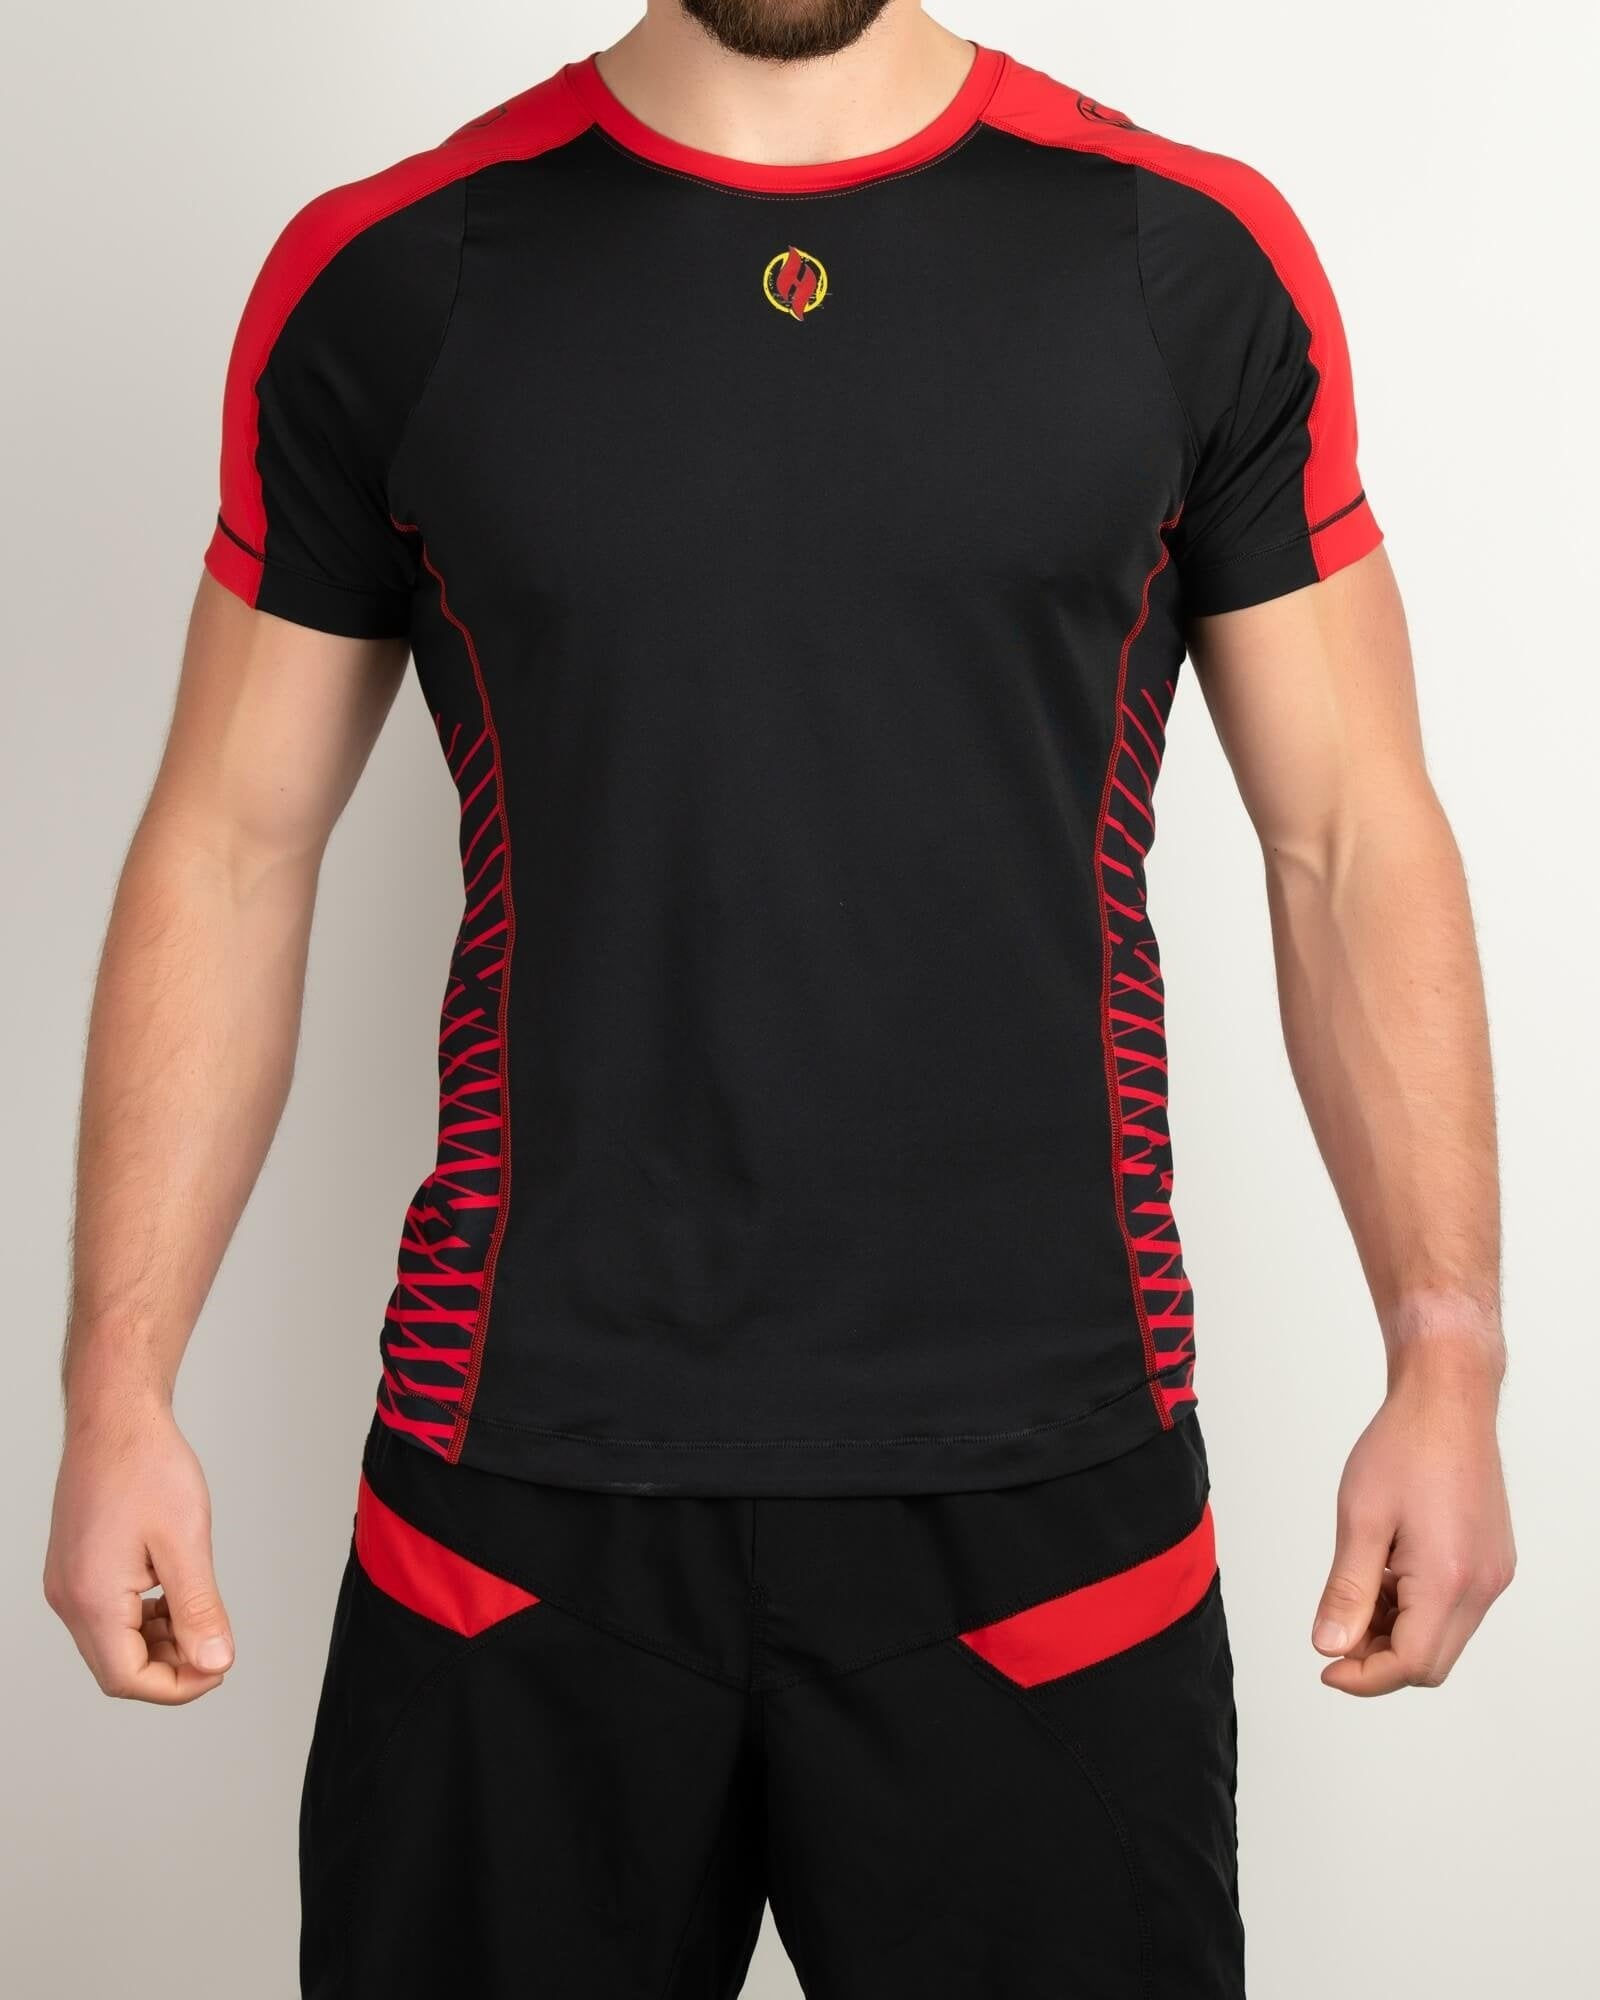 Finisher Jersey Black/Red - Same Day Shipping